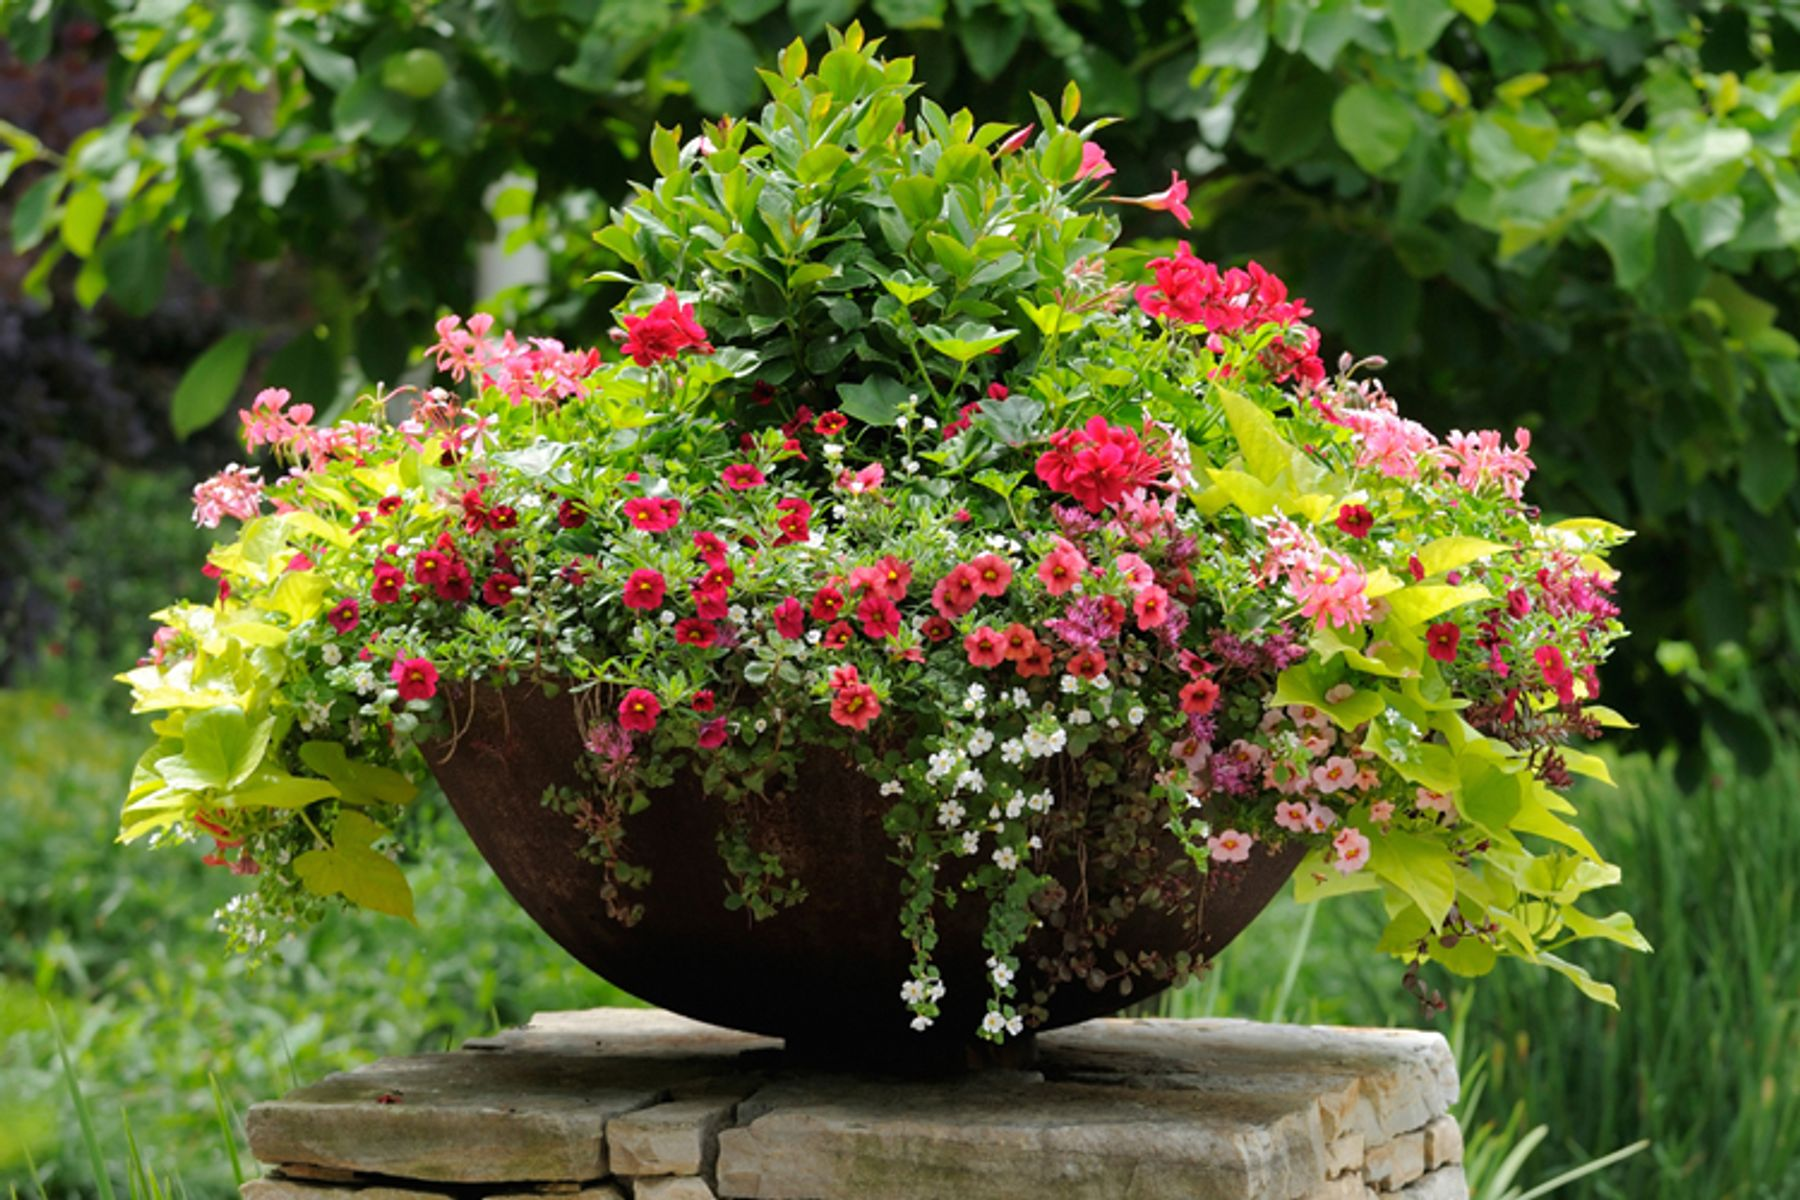 Container Gardening Online Course - Learning with Experts